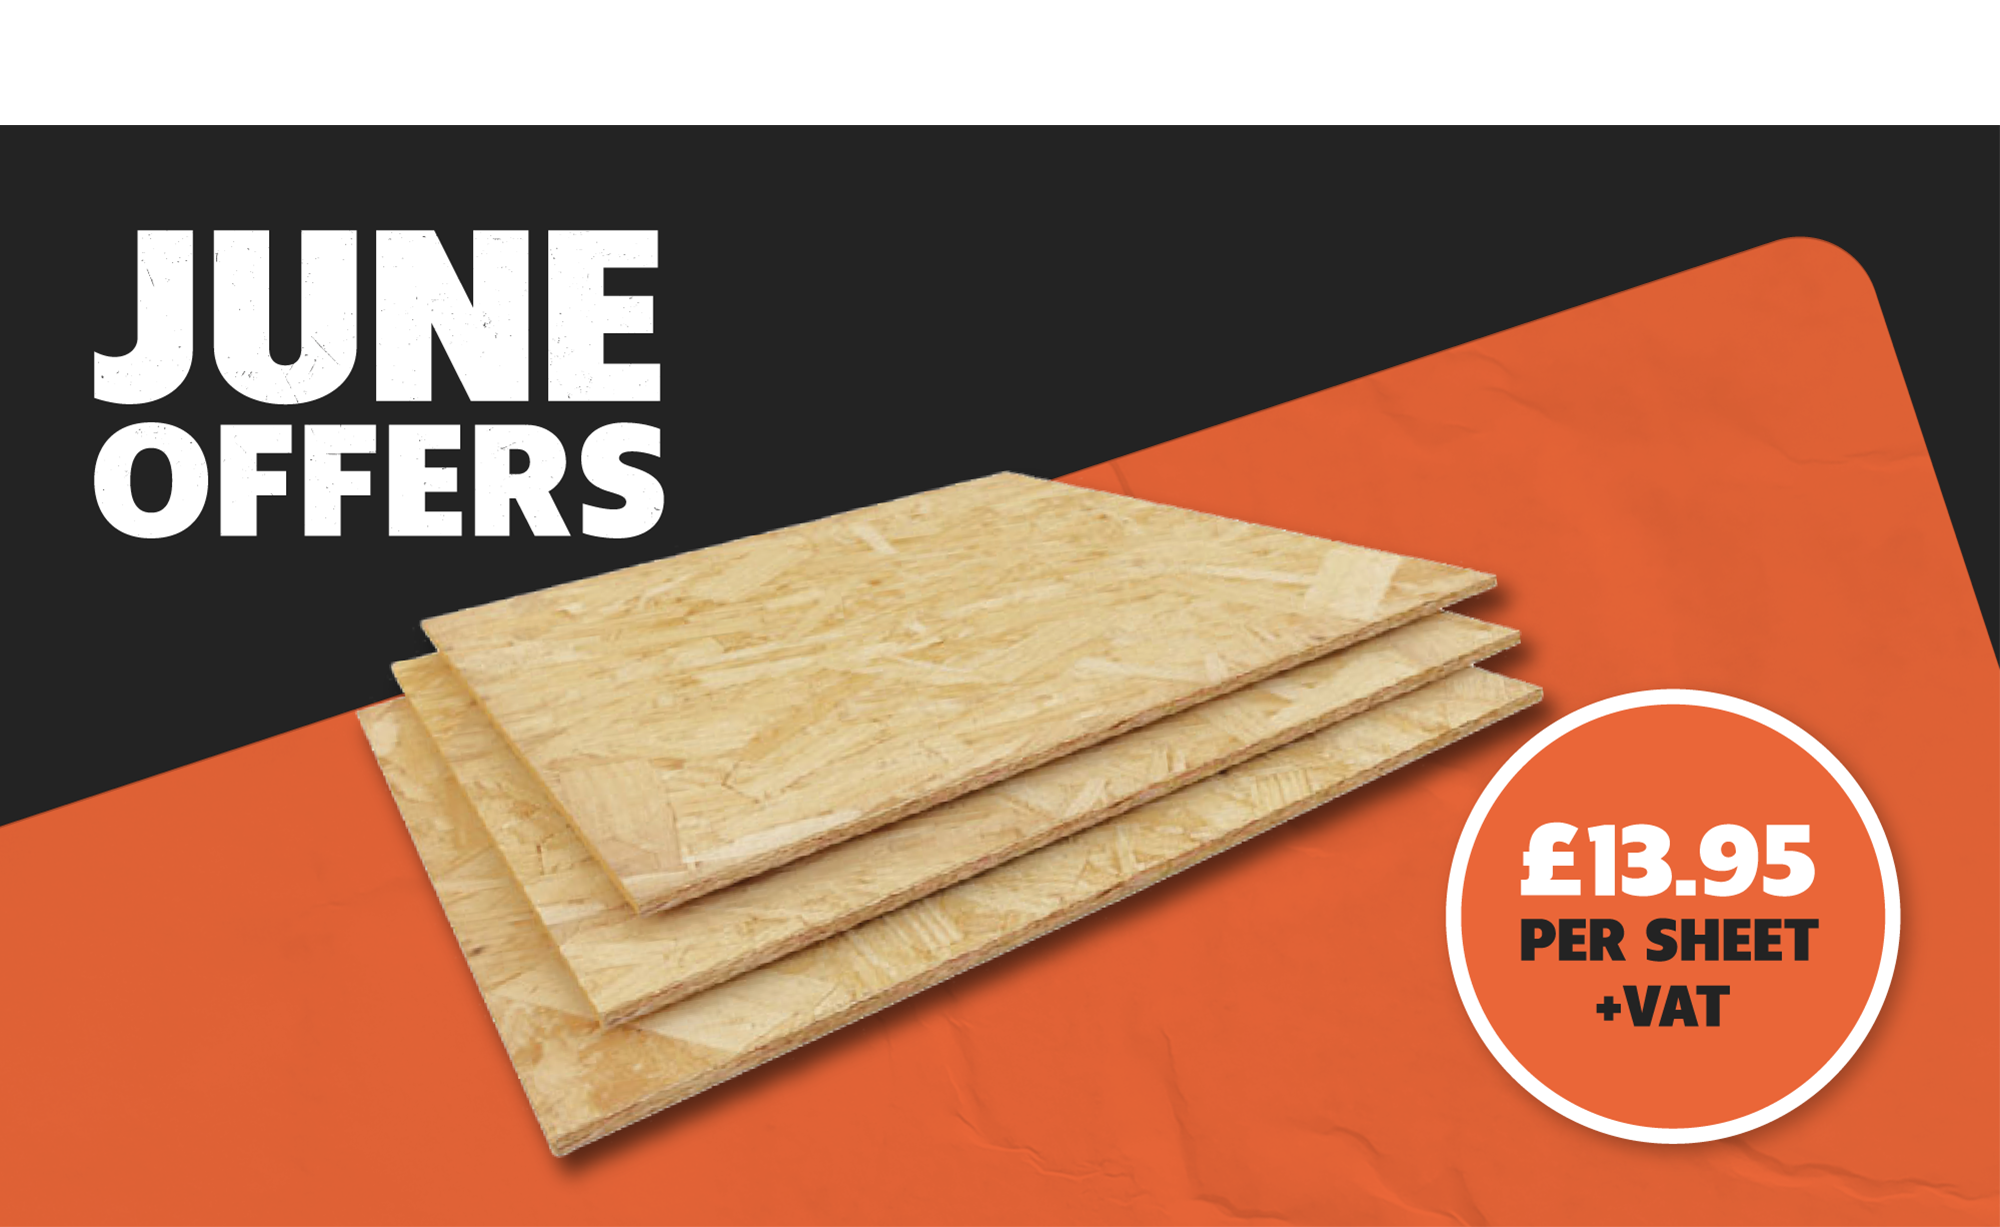 0SB BOARD ONLY £13.95 PER SHEET